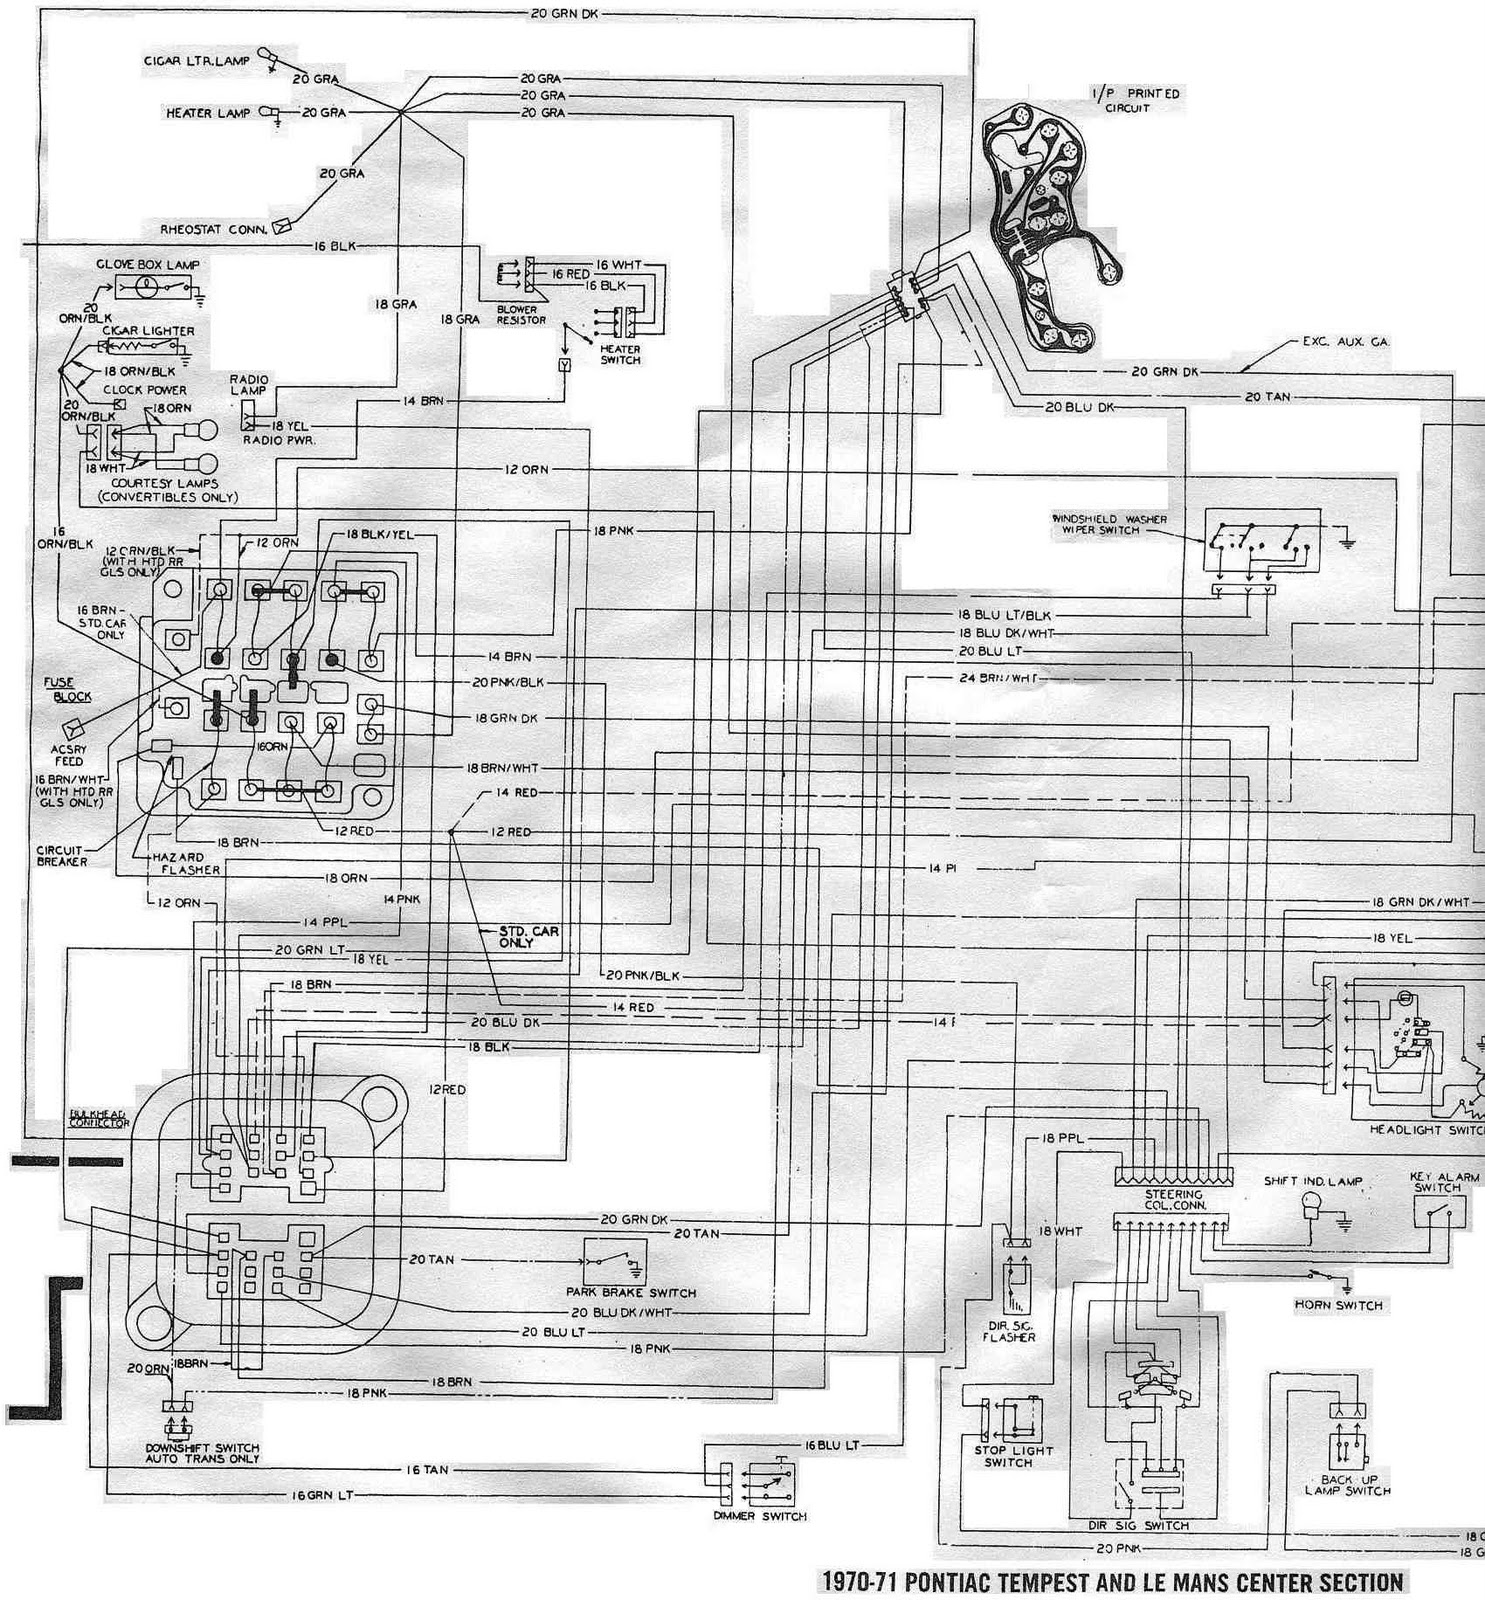 1970 pontiac gto wiring diagram pontiac tempest and lemans 1970-1971 center section ...